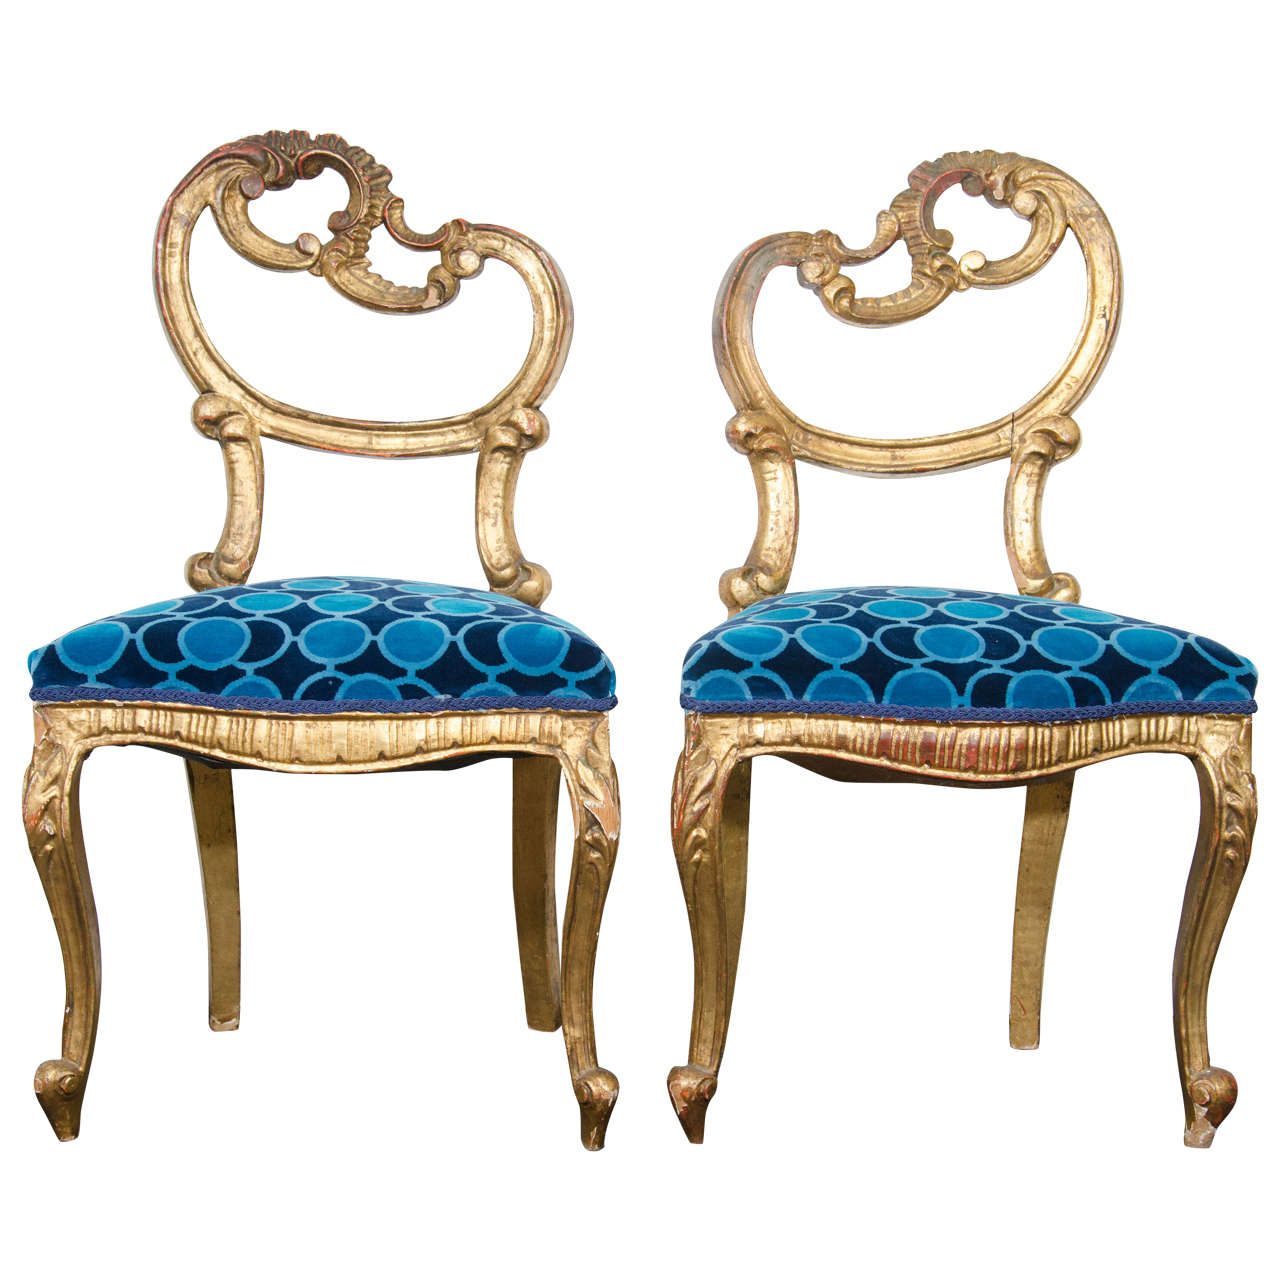 Pair Of French Giltwood Louis Xv Style Side Chairs With Asymmetrical Backs For